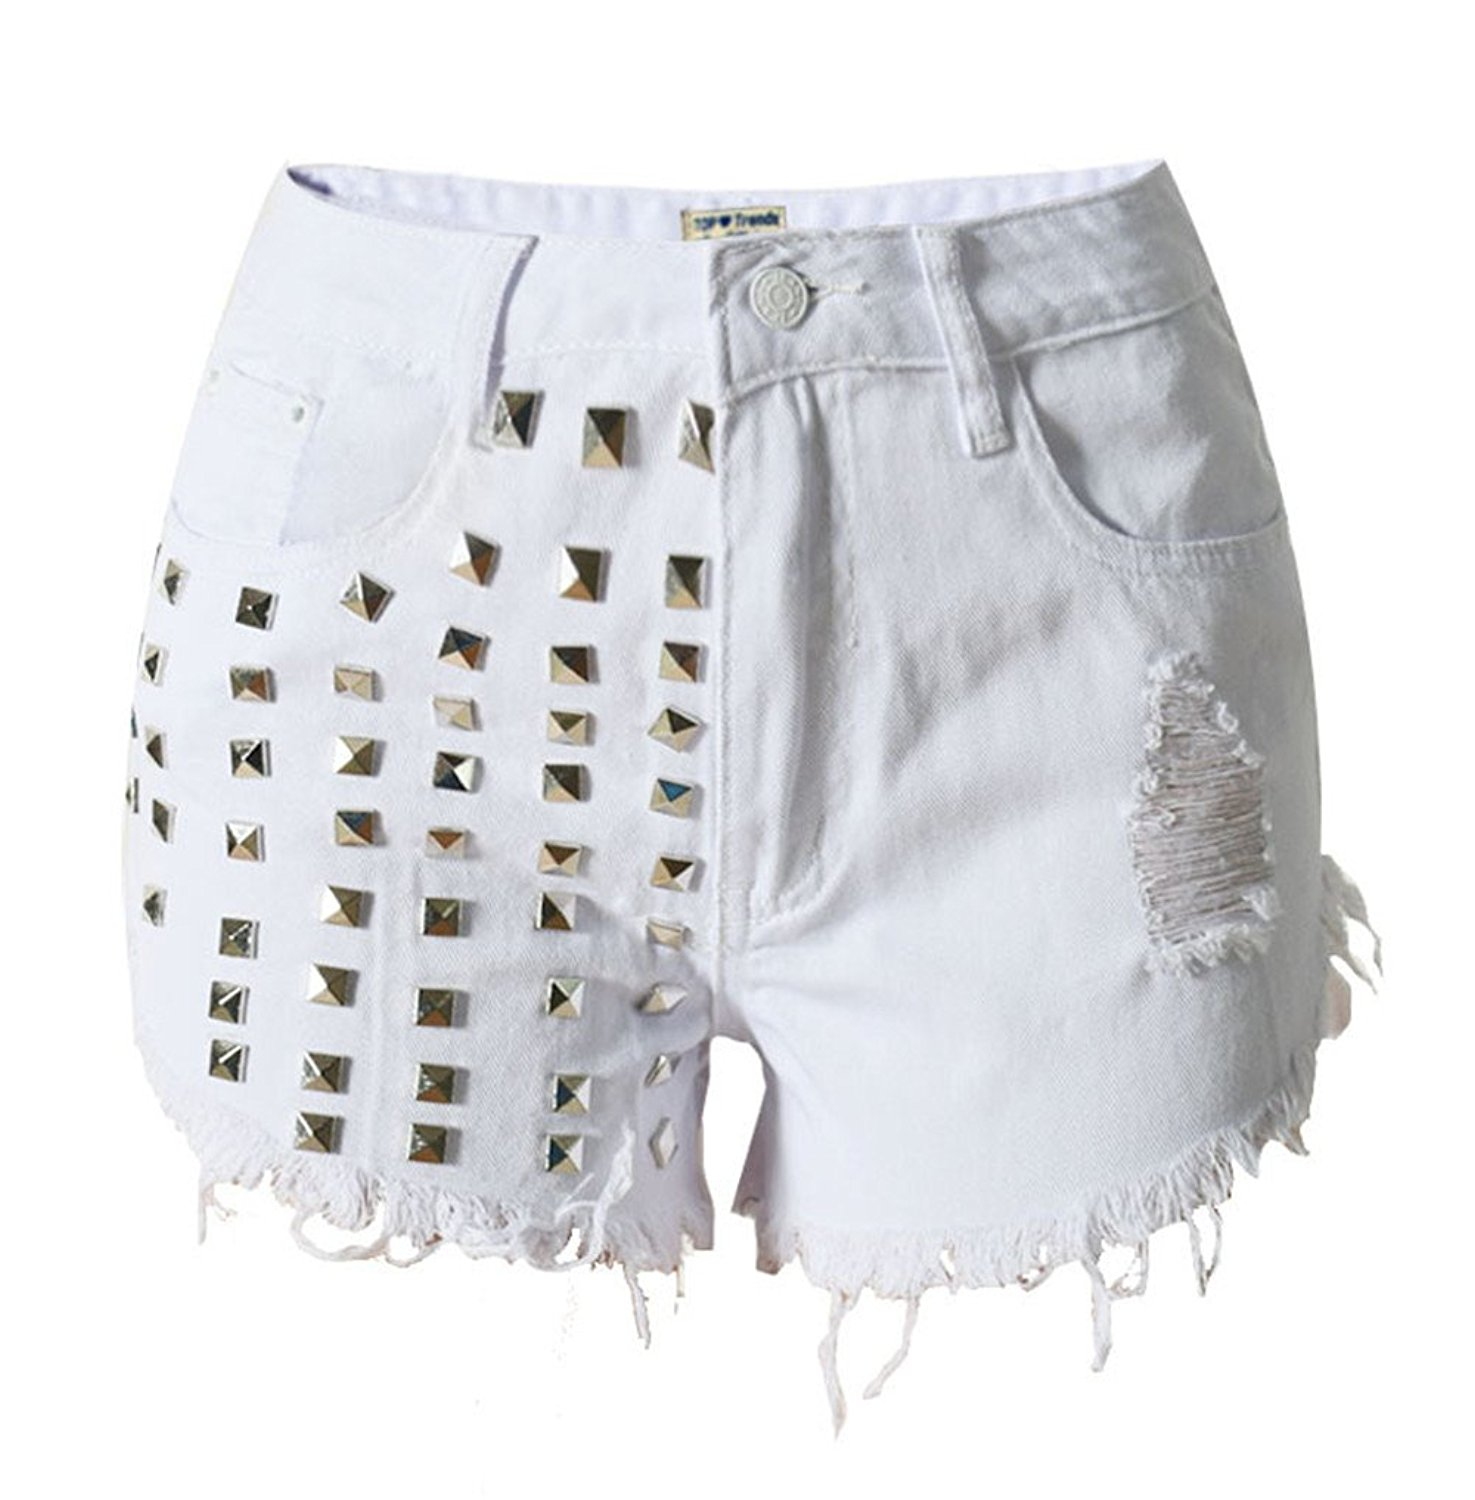 ccc550ec82216b Get Quotations · Cool Rivet Hole Denim White Shorts Women Ripped Fringe Jean  Hot Shorts Ladies Casual Summer High